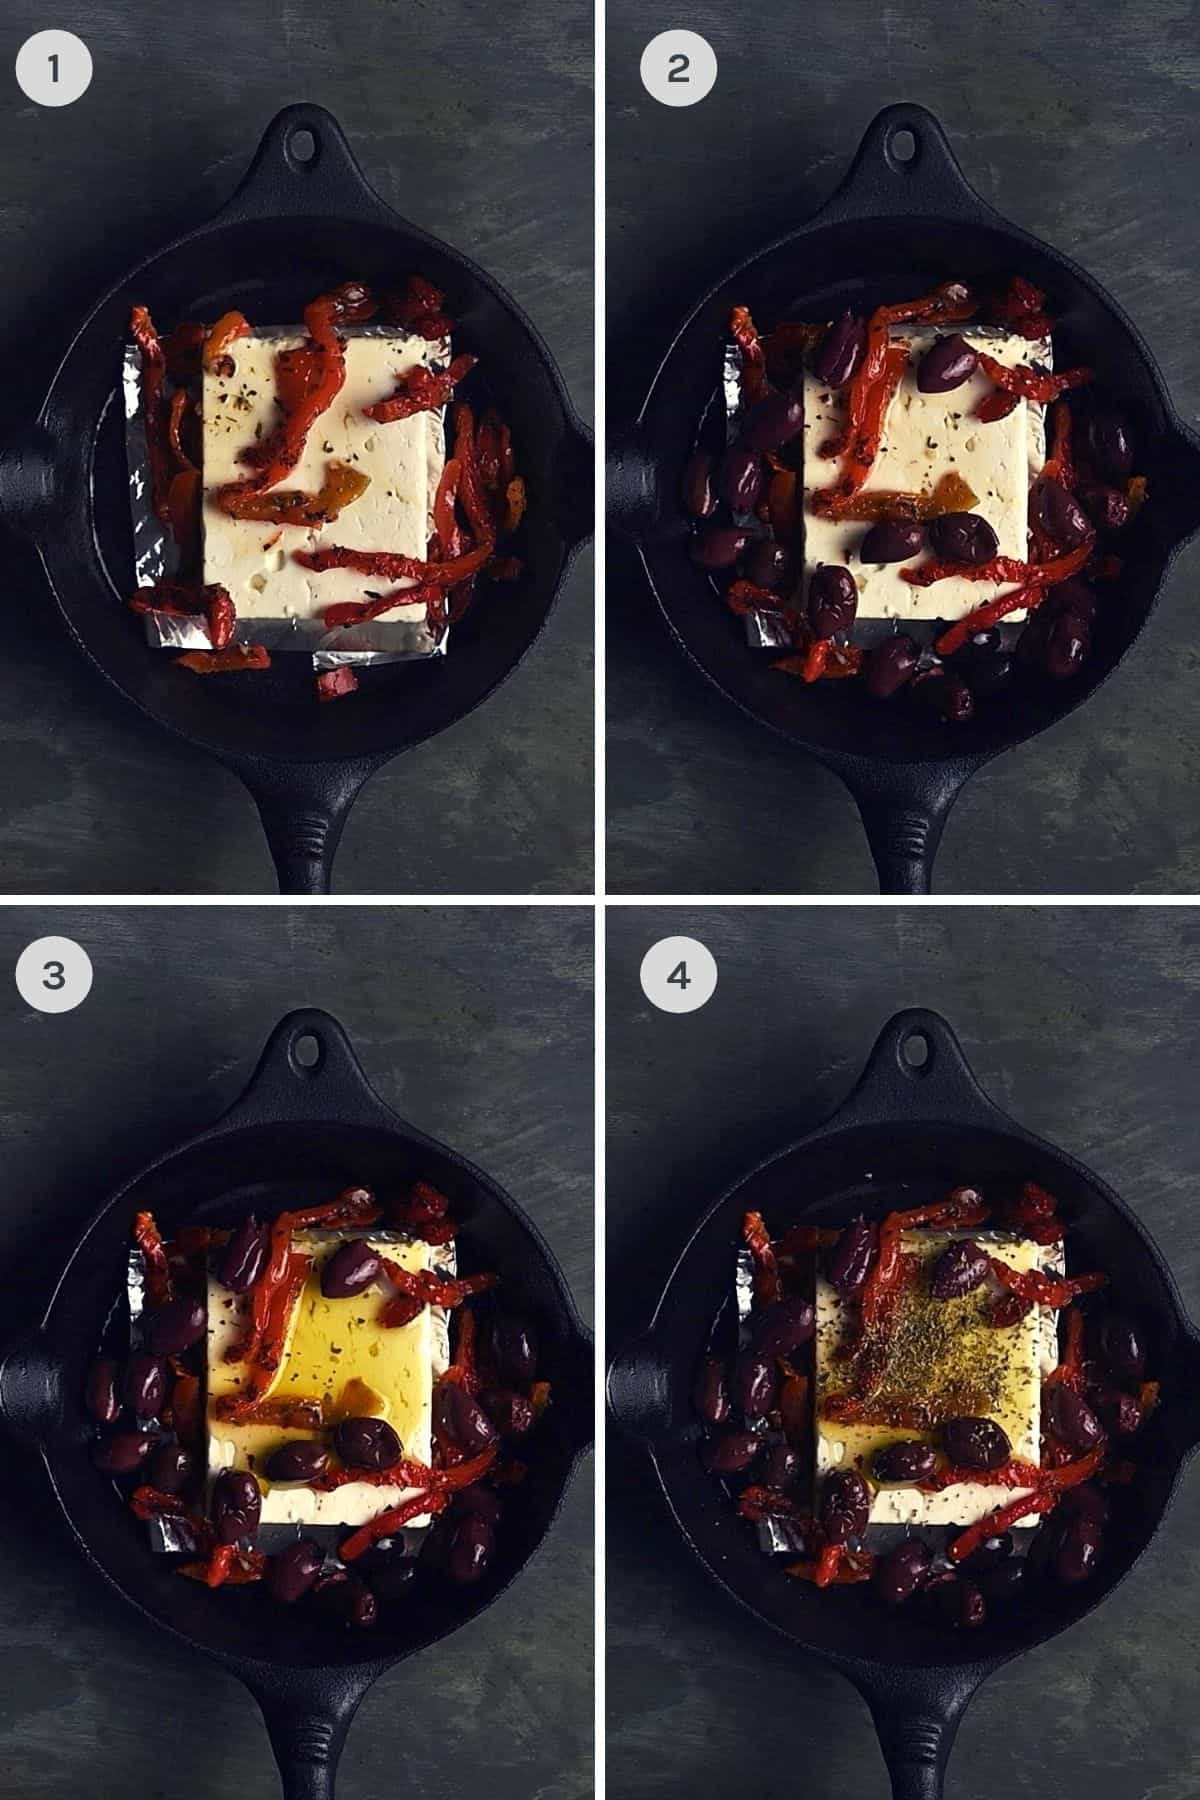 step by step instructions explaining how to make baked feta with roasted peppers and olives